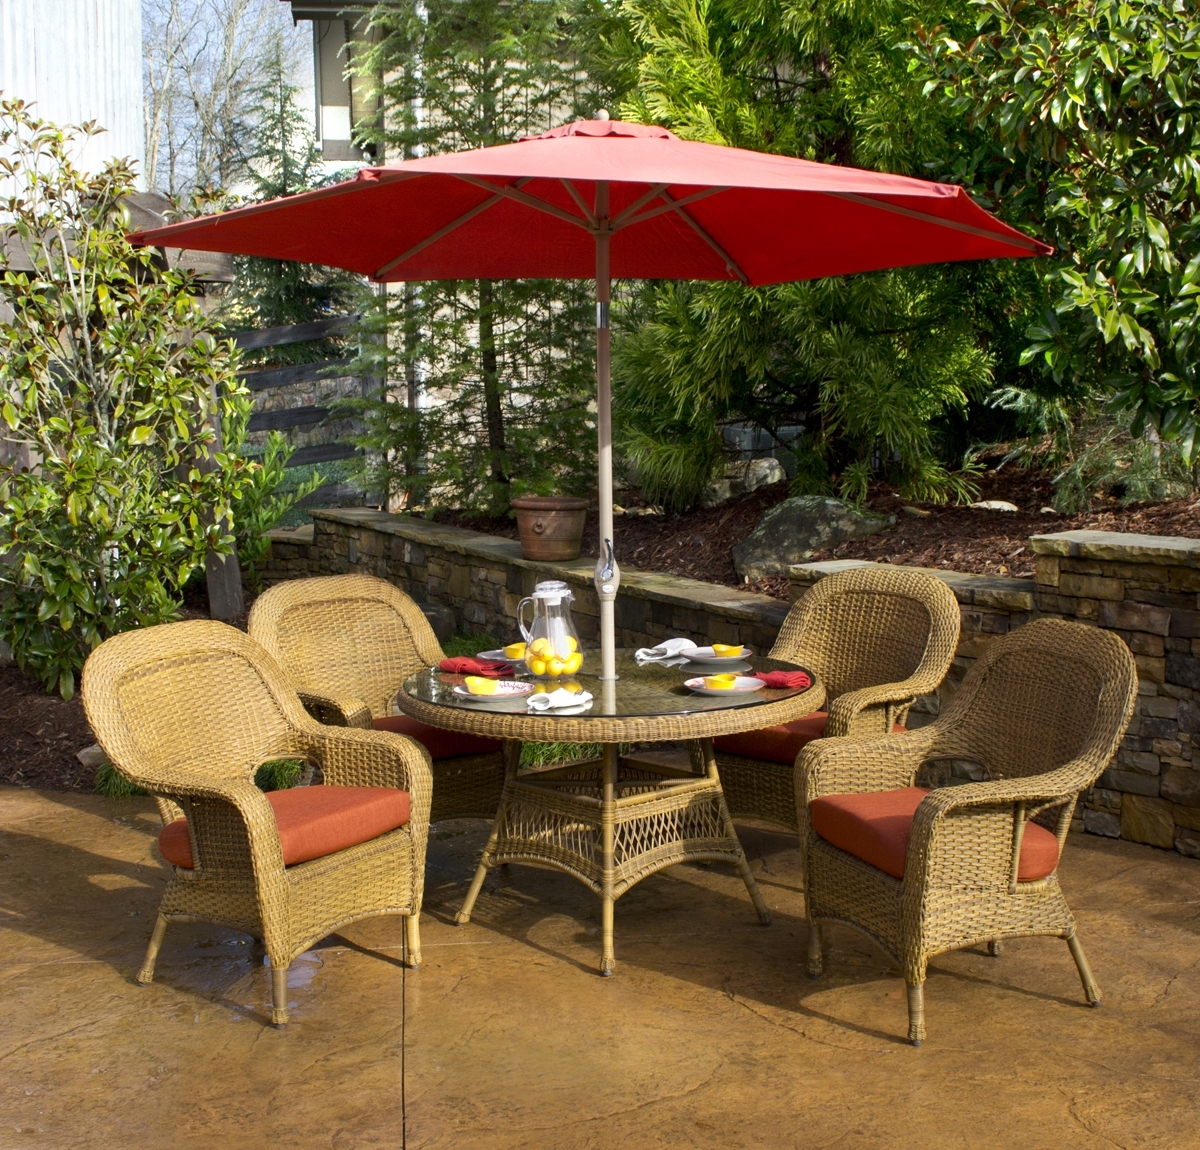 Current Patio Furniture Sets With Umbrellas Within Cute Umbrella For Patio Table : Life On The Move – Umbrella For (View 3 of 20)